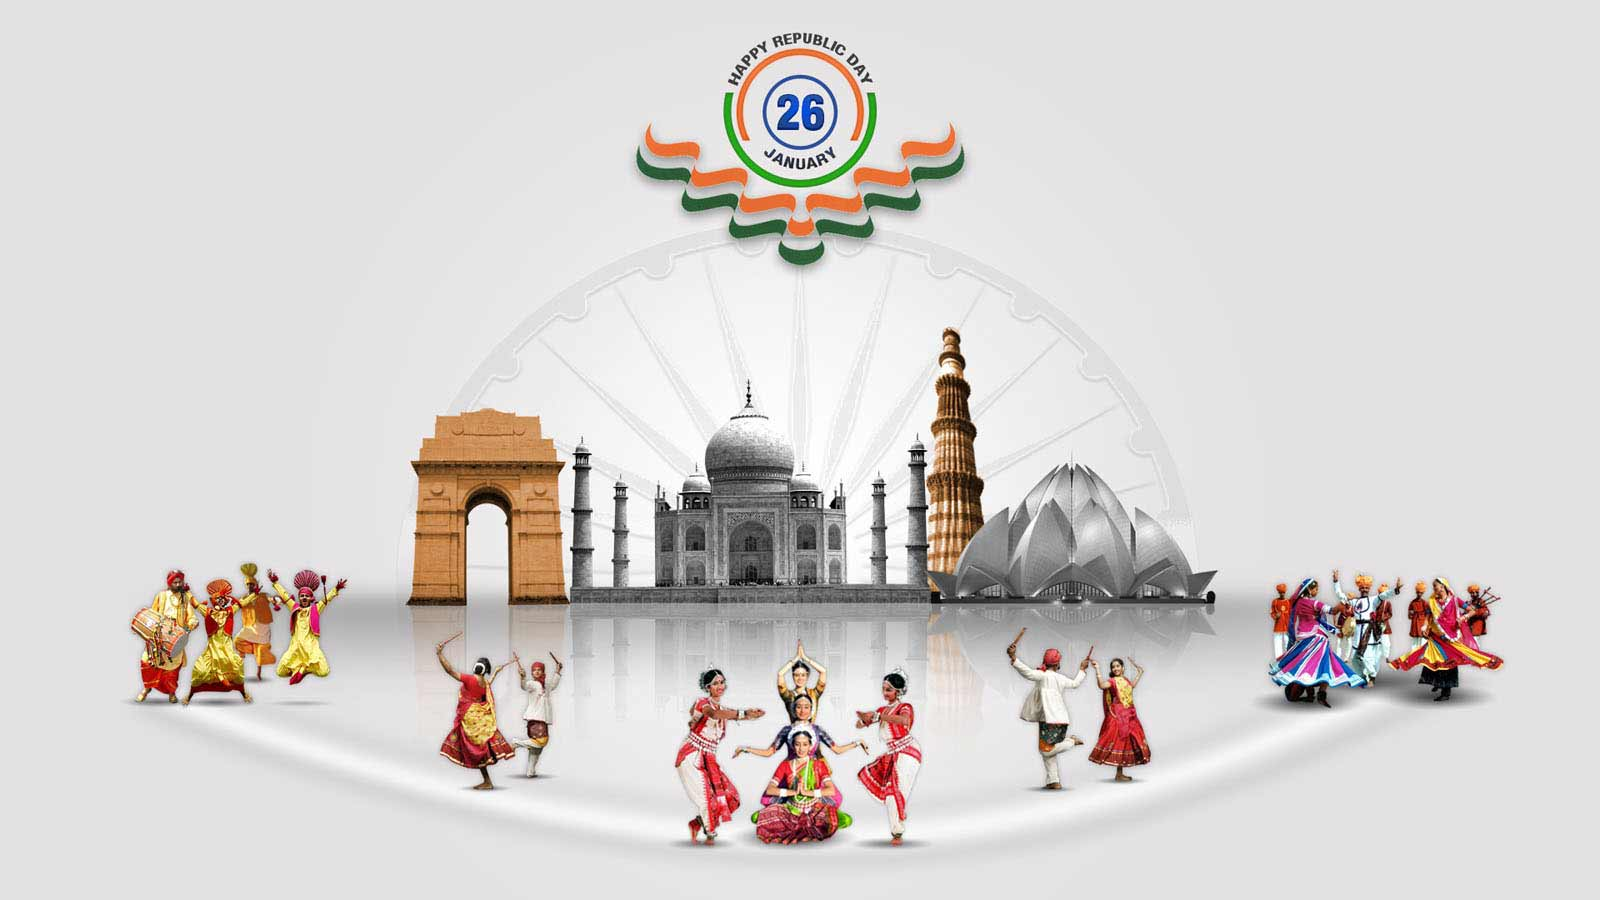 Republic day 2019 wishes quotes greetings patriotic whatsapp republic day 2019 wishes quotes and greetings in english m4hsunfo